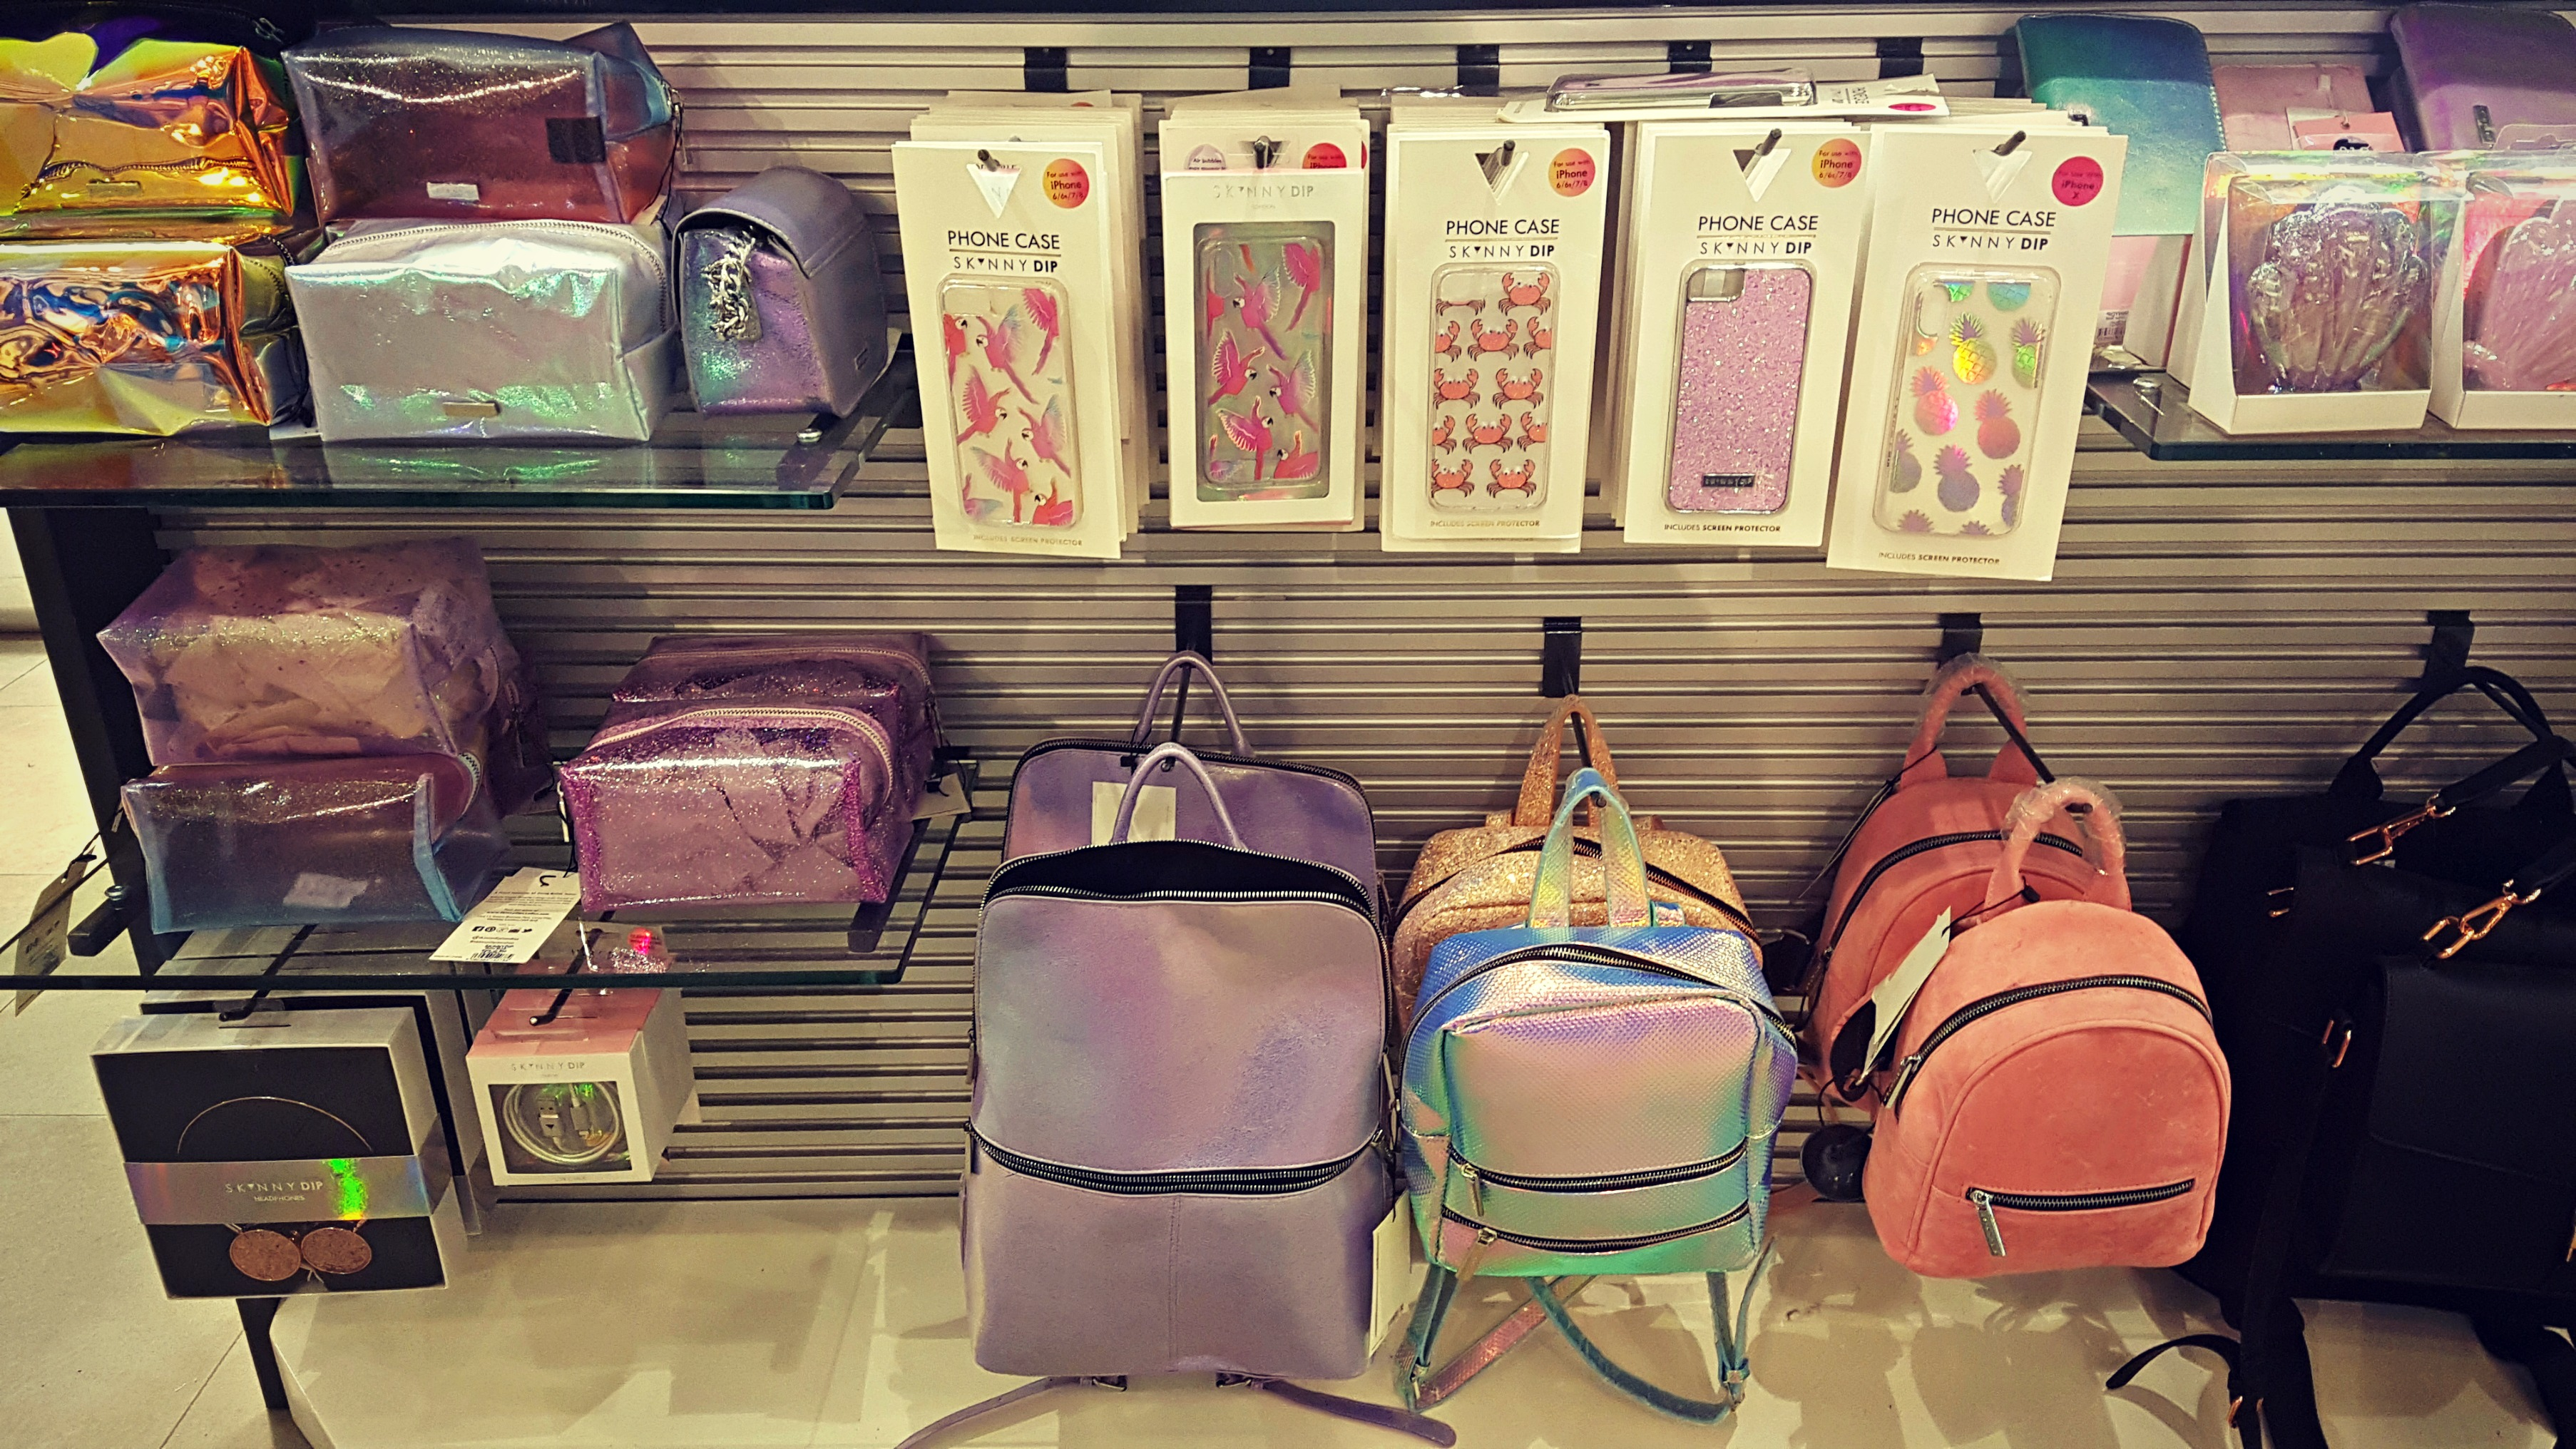 a range of skinny dip make up bags, phone cases and backpacks at a till point in an outfit store